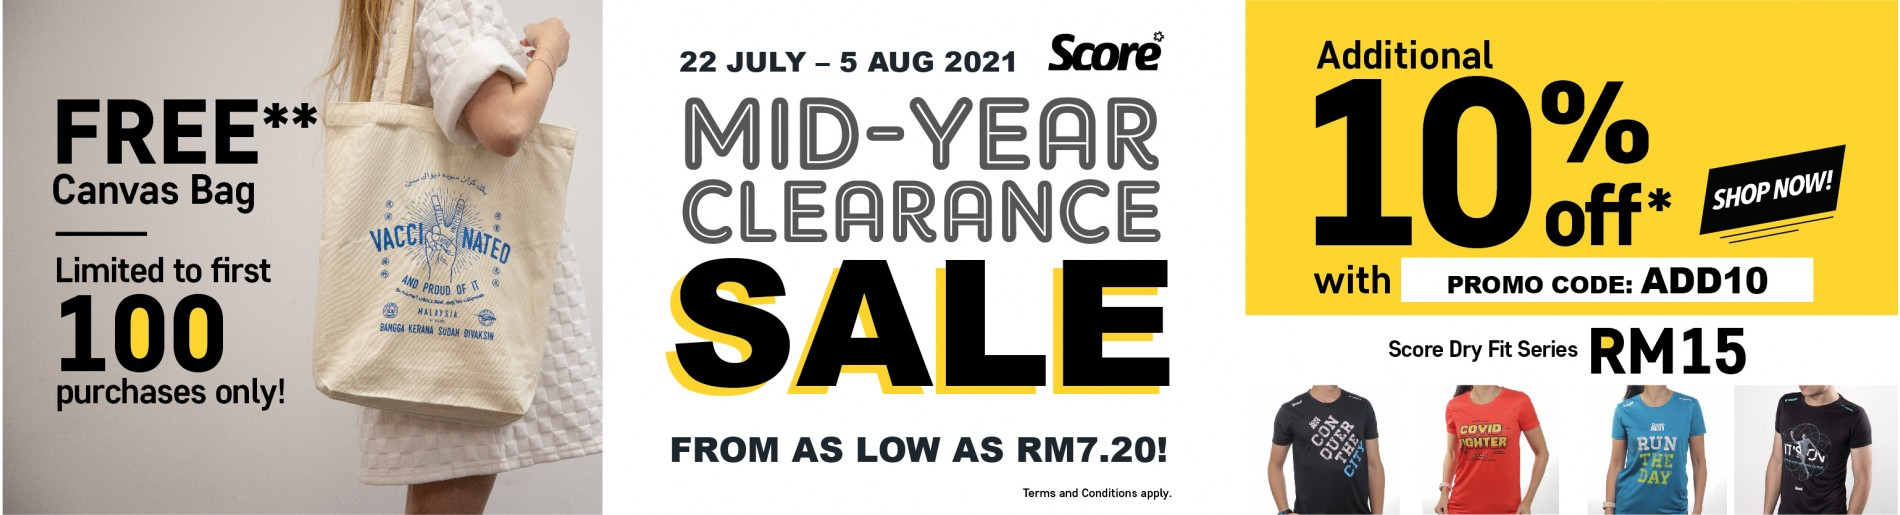 SCORE MID-YEAR CLEARANCE SALE